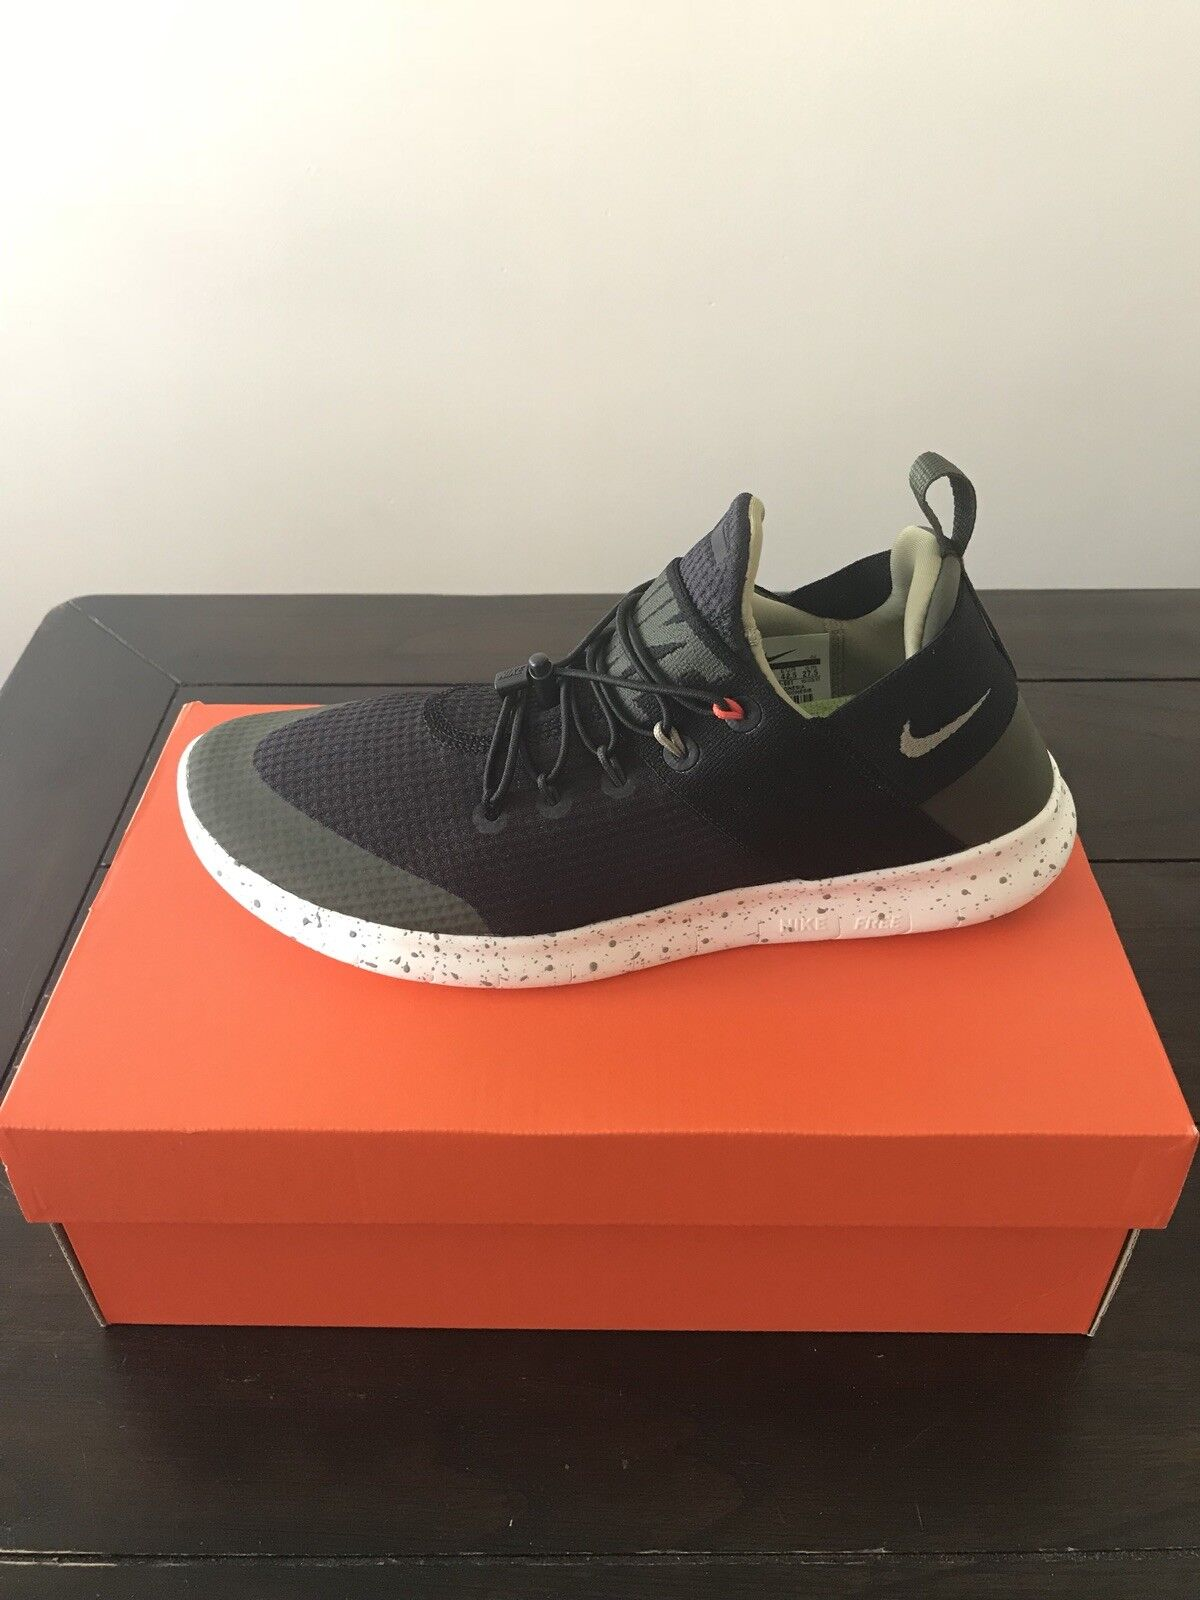 Nike Free Rn 2017 Utilty Womens Size 10.5 NEW IN BOX Mens Size 9.5 SOLD OUT